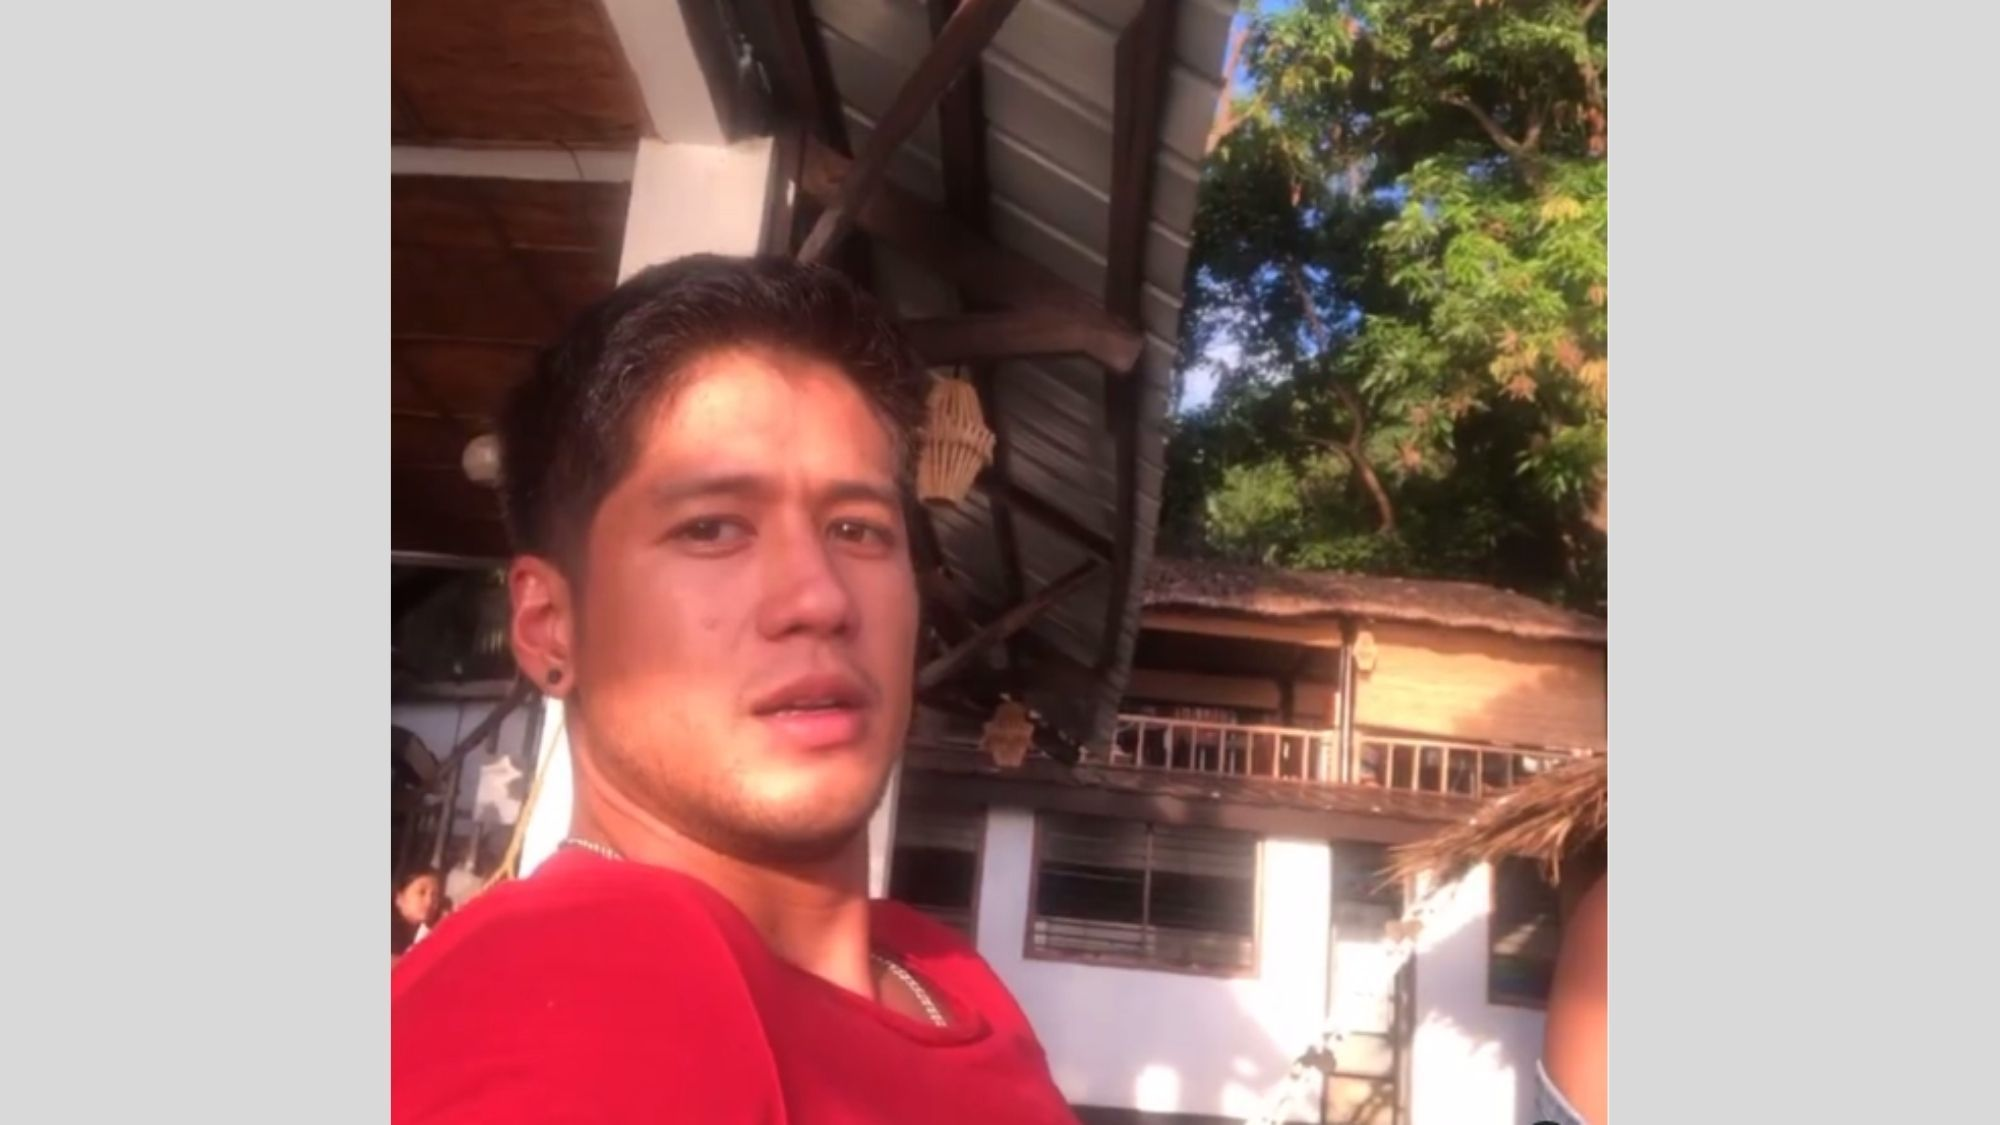 Aljur Abrenica hides off to Mabini, Batangas after split with Kylie Padilla